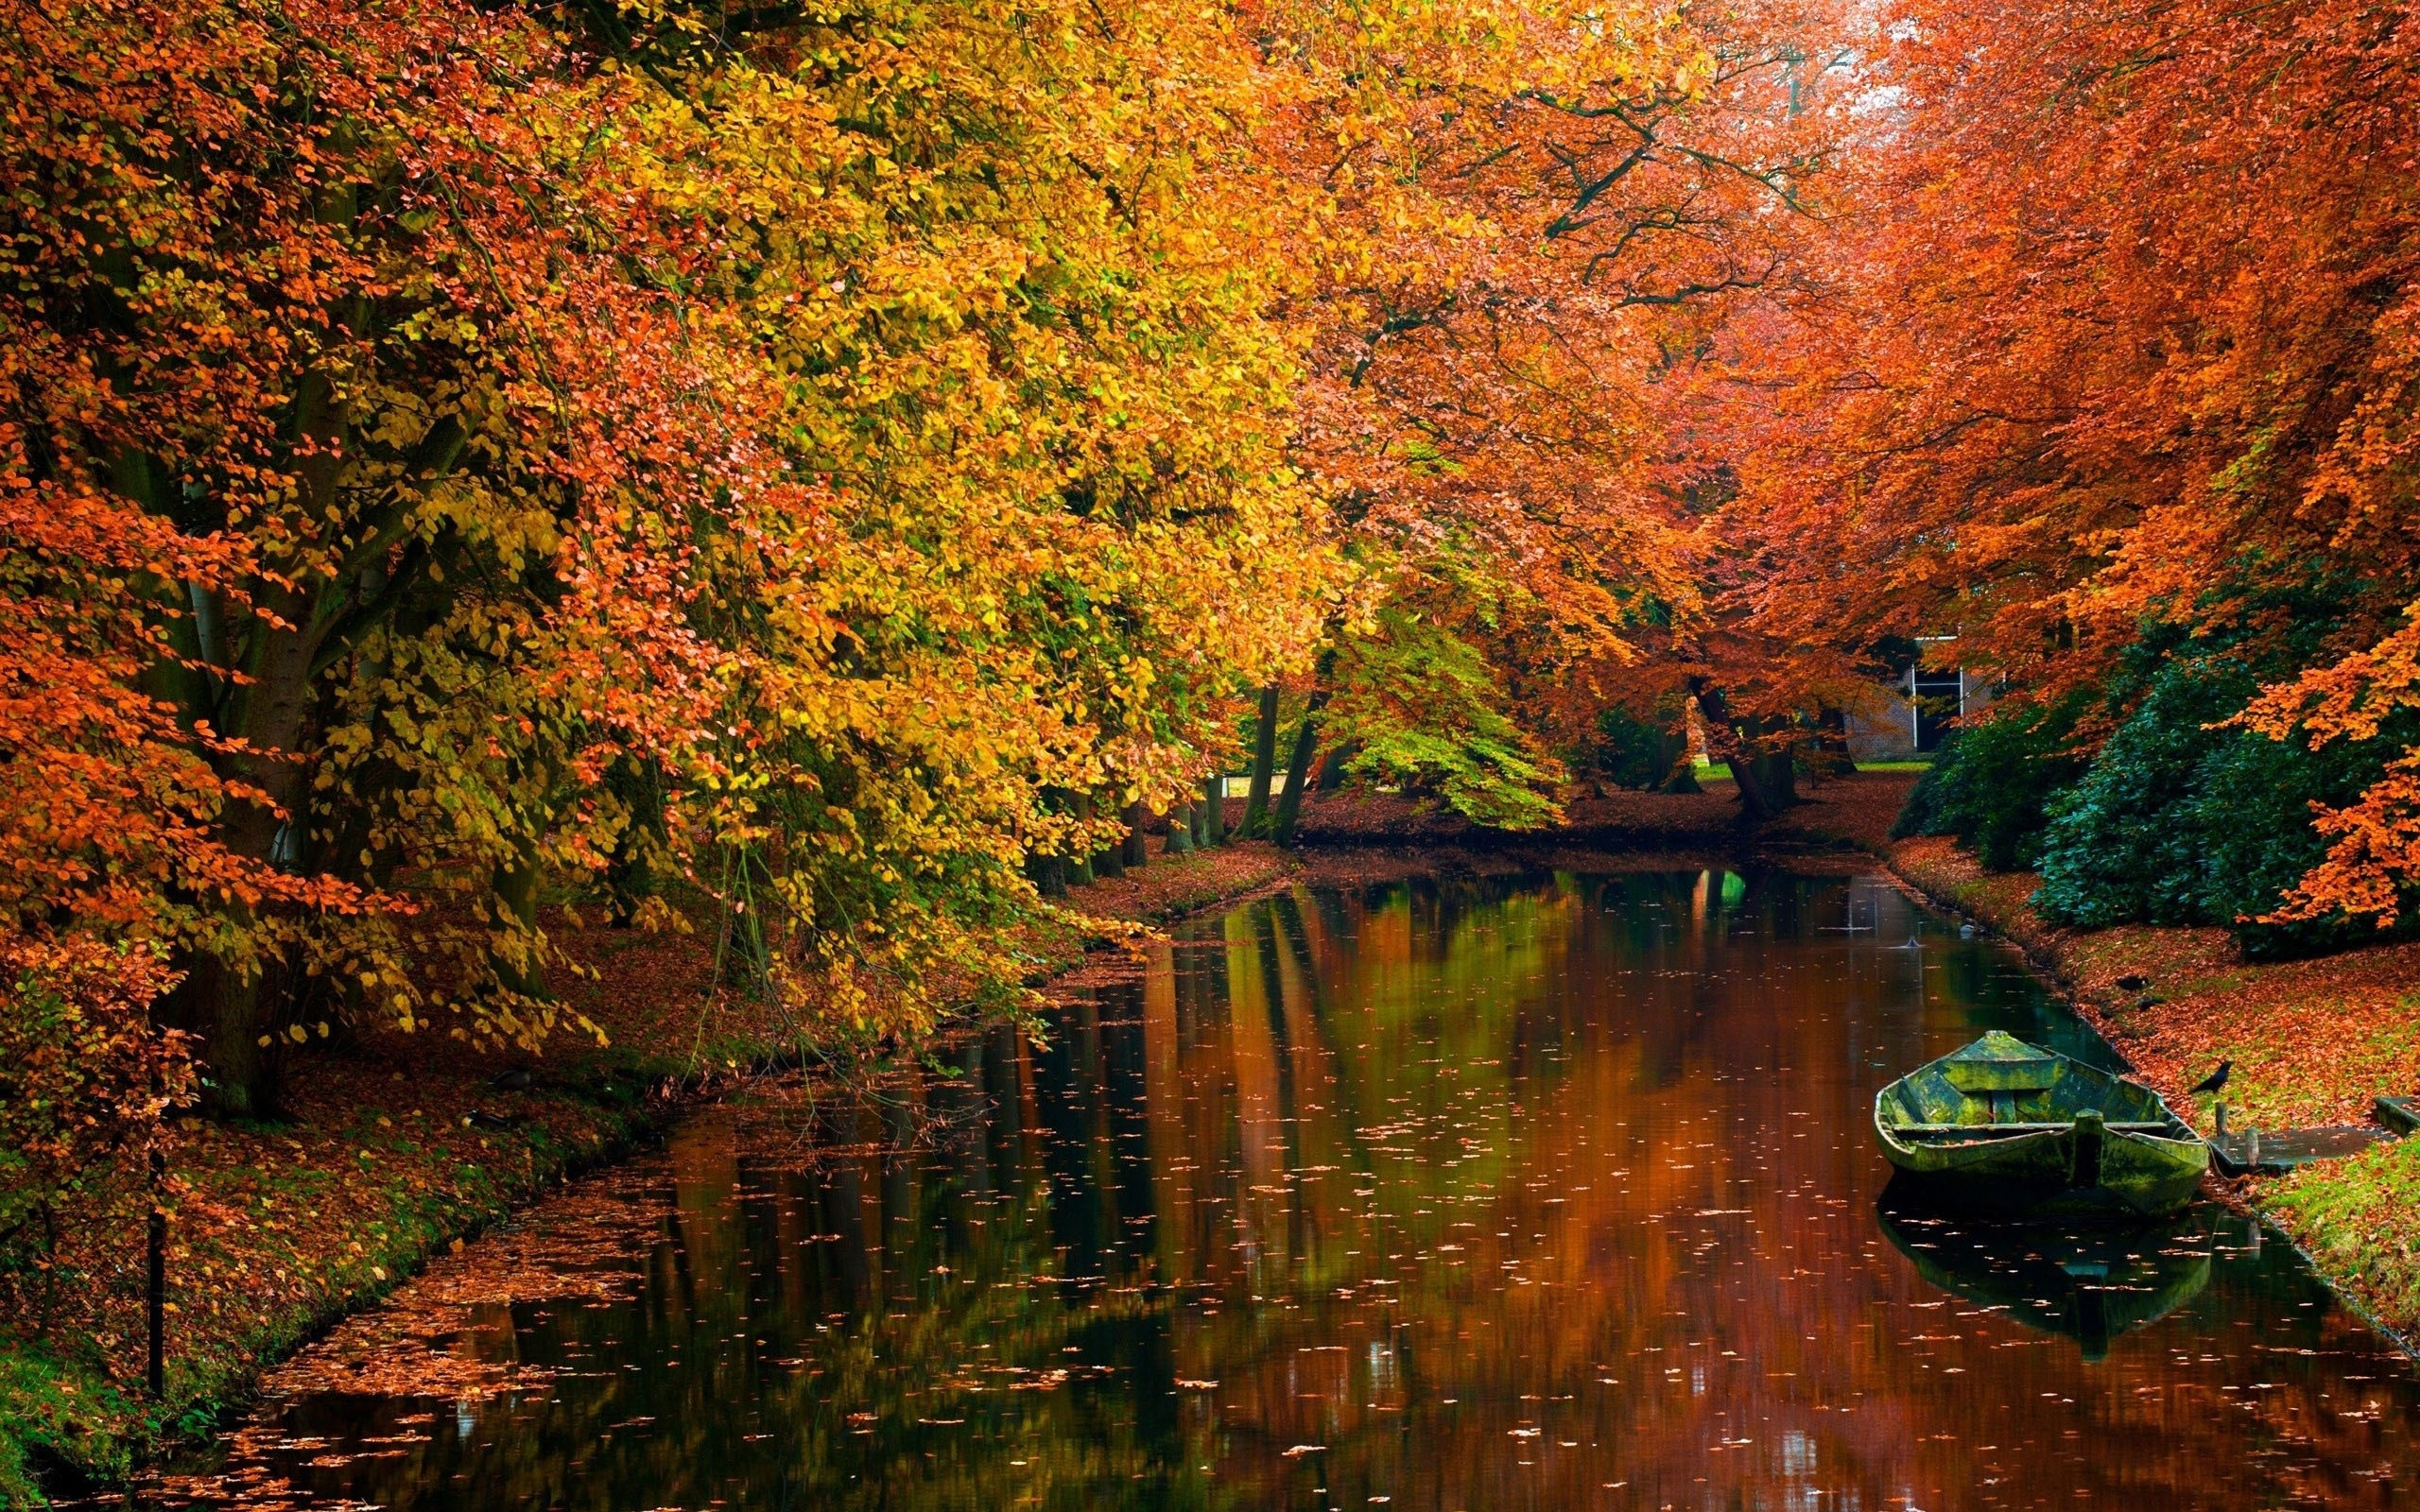 Free-Autumn-Mac-iMac-Retina-MacBook-Pro-wallpaper-wp3405778